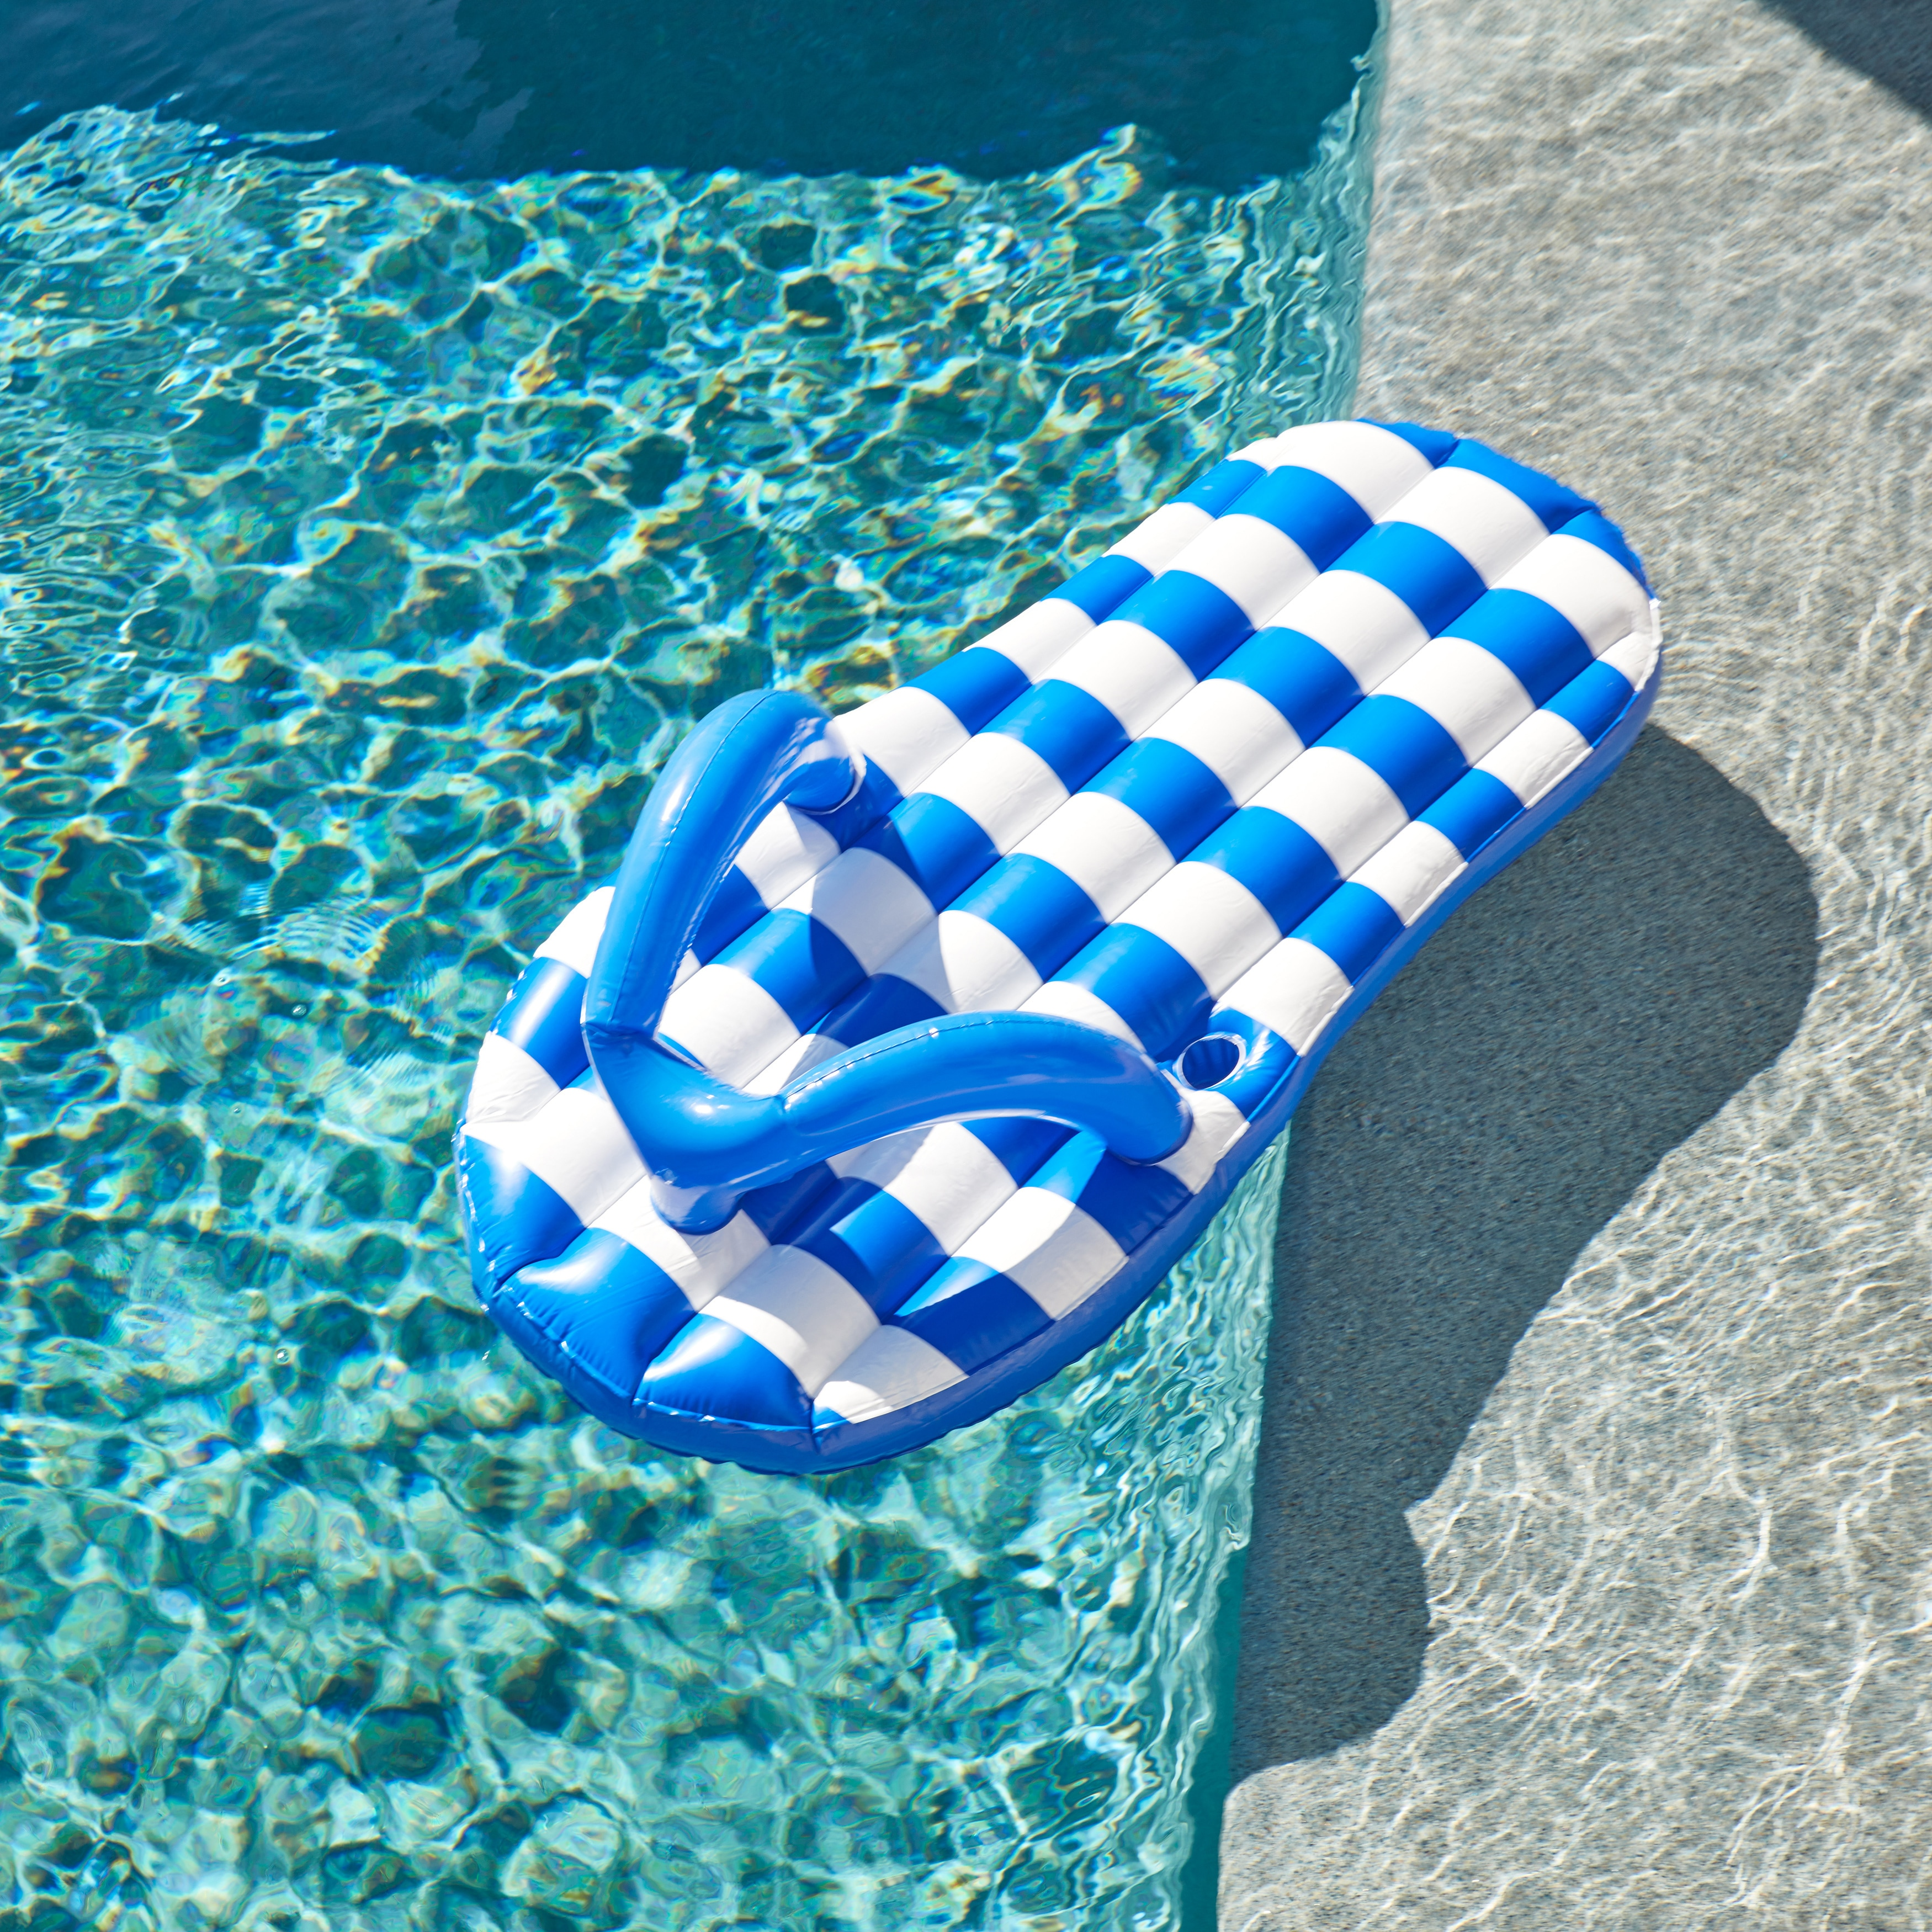 a3b4a189bc4 Details about Marine Blue Flip Flop 71-inch Inflatable Pool Float